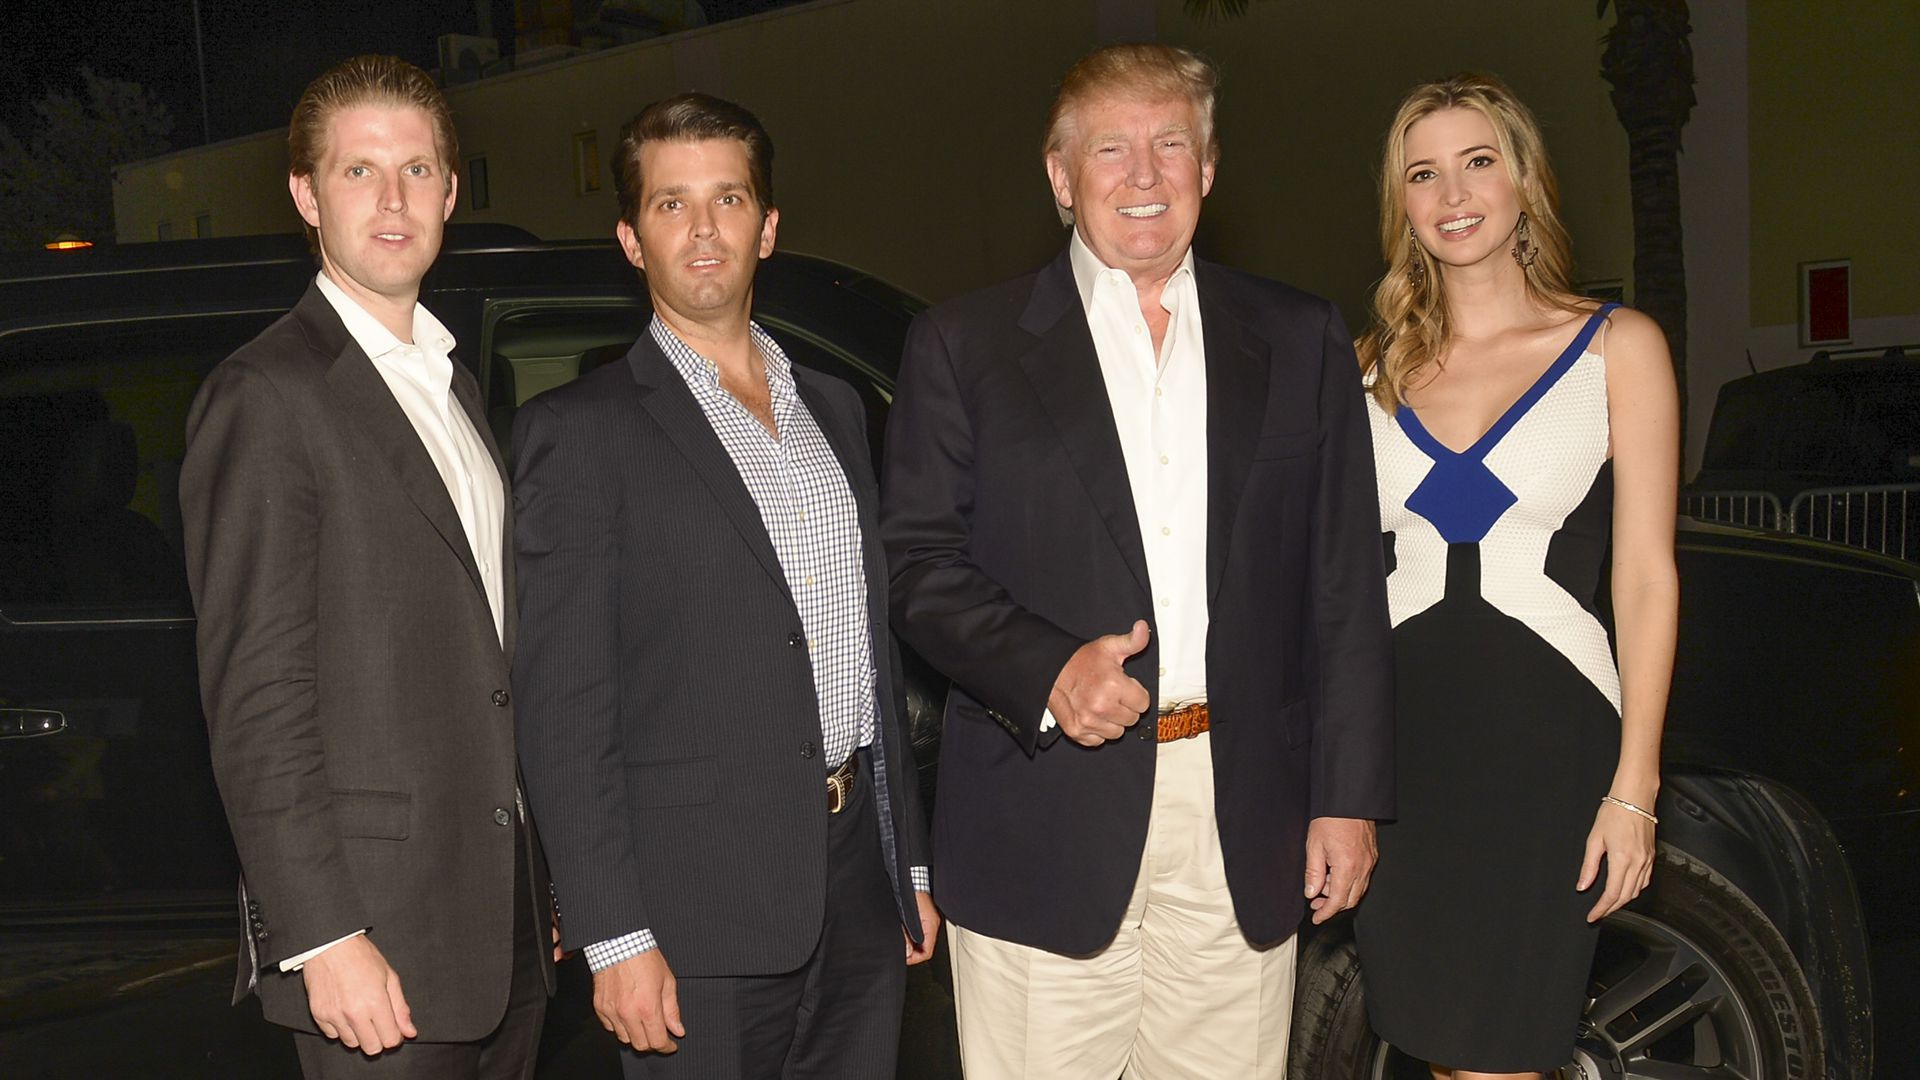 Eric Trump, Donald Trump, Jr., President Trump, and Ivanka Trump arrive to The Opening Drive Party at Hyde Beach on March 4, 2014 in Miami, Florida.